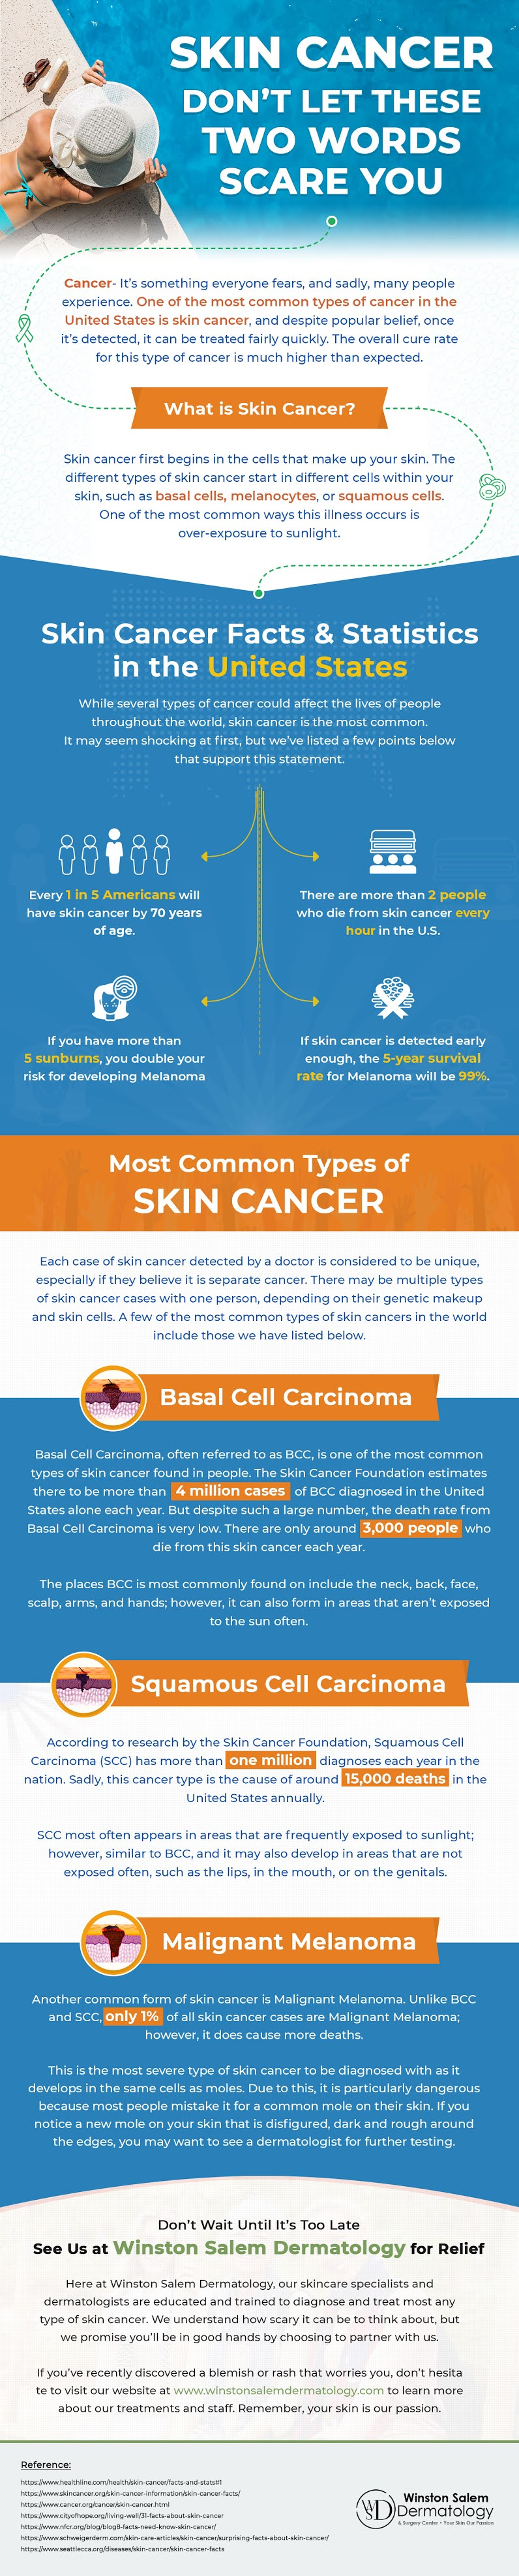 Skin Cancer – Don't Let These Two Words Scare You #infographic #skin care #infographics #Skin Cancer